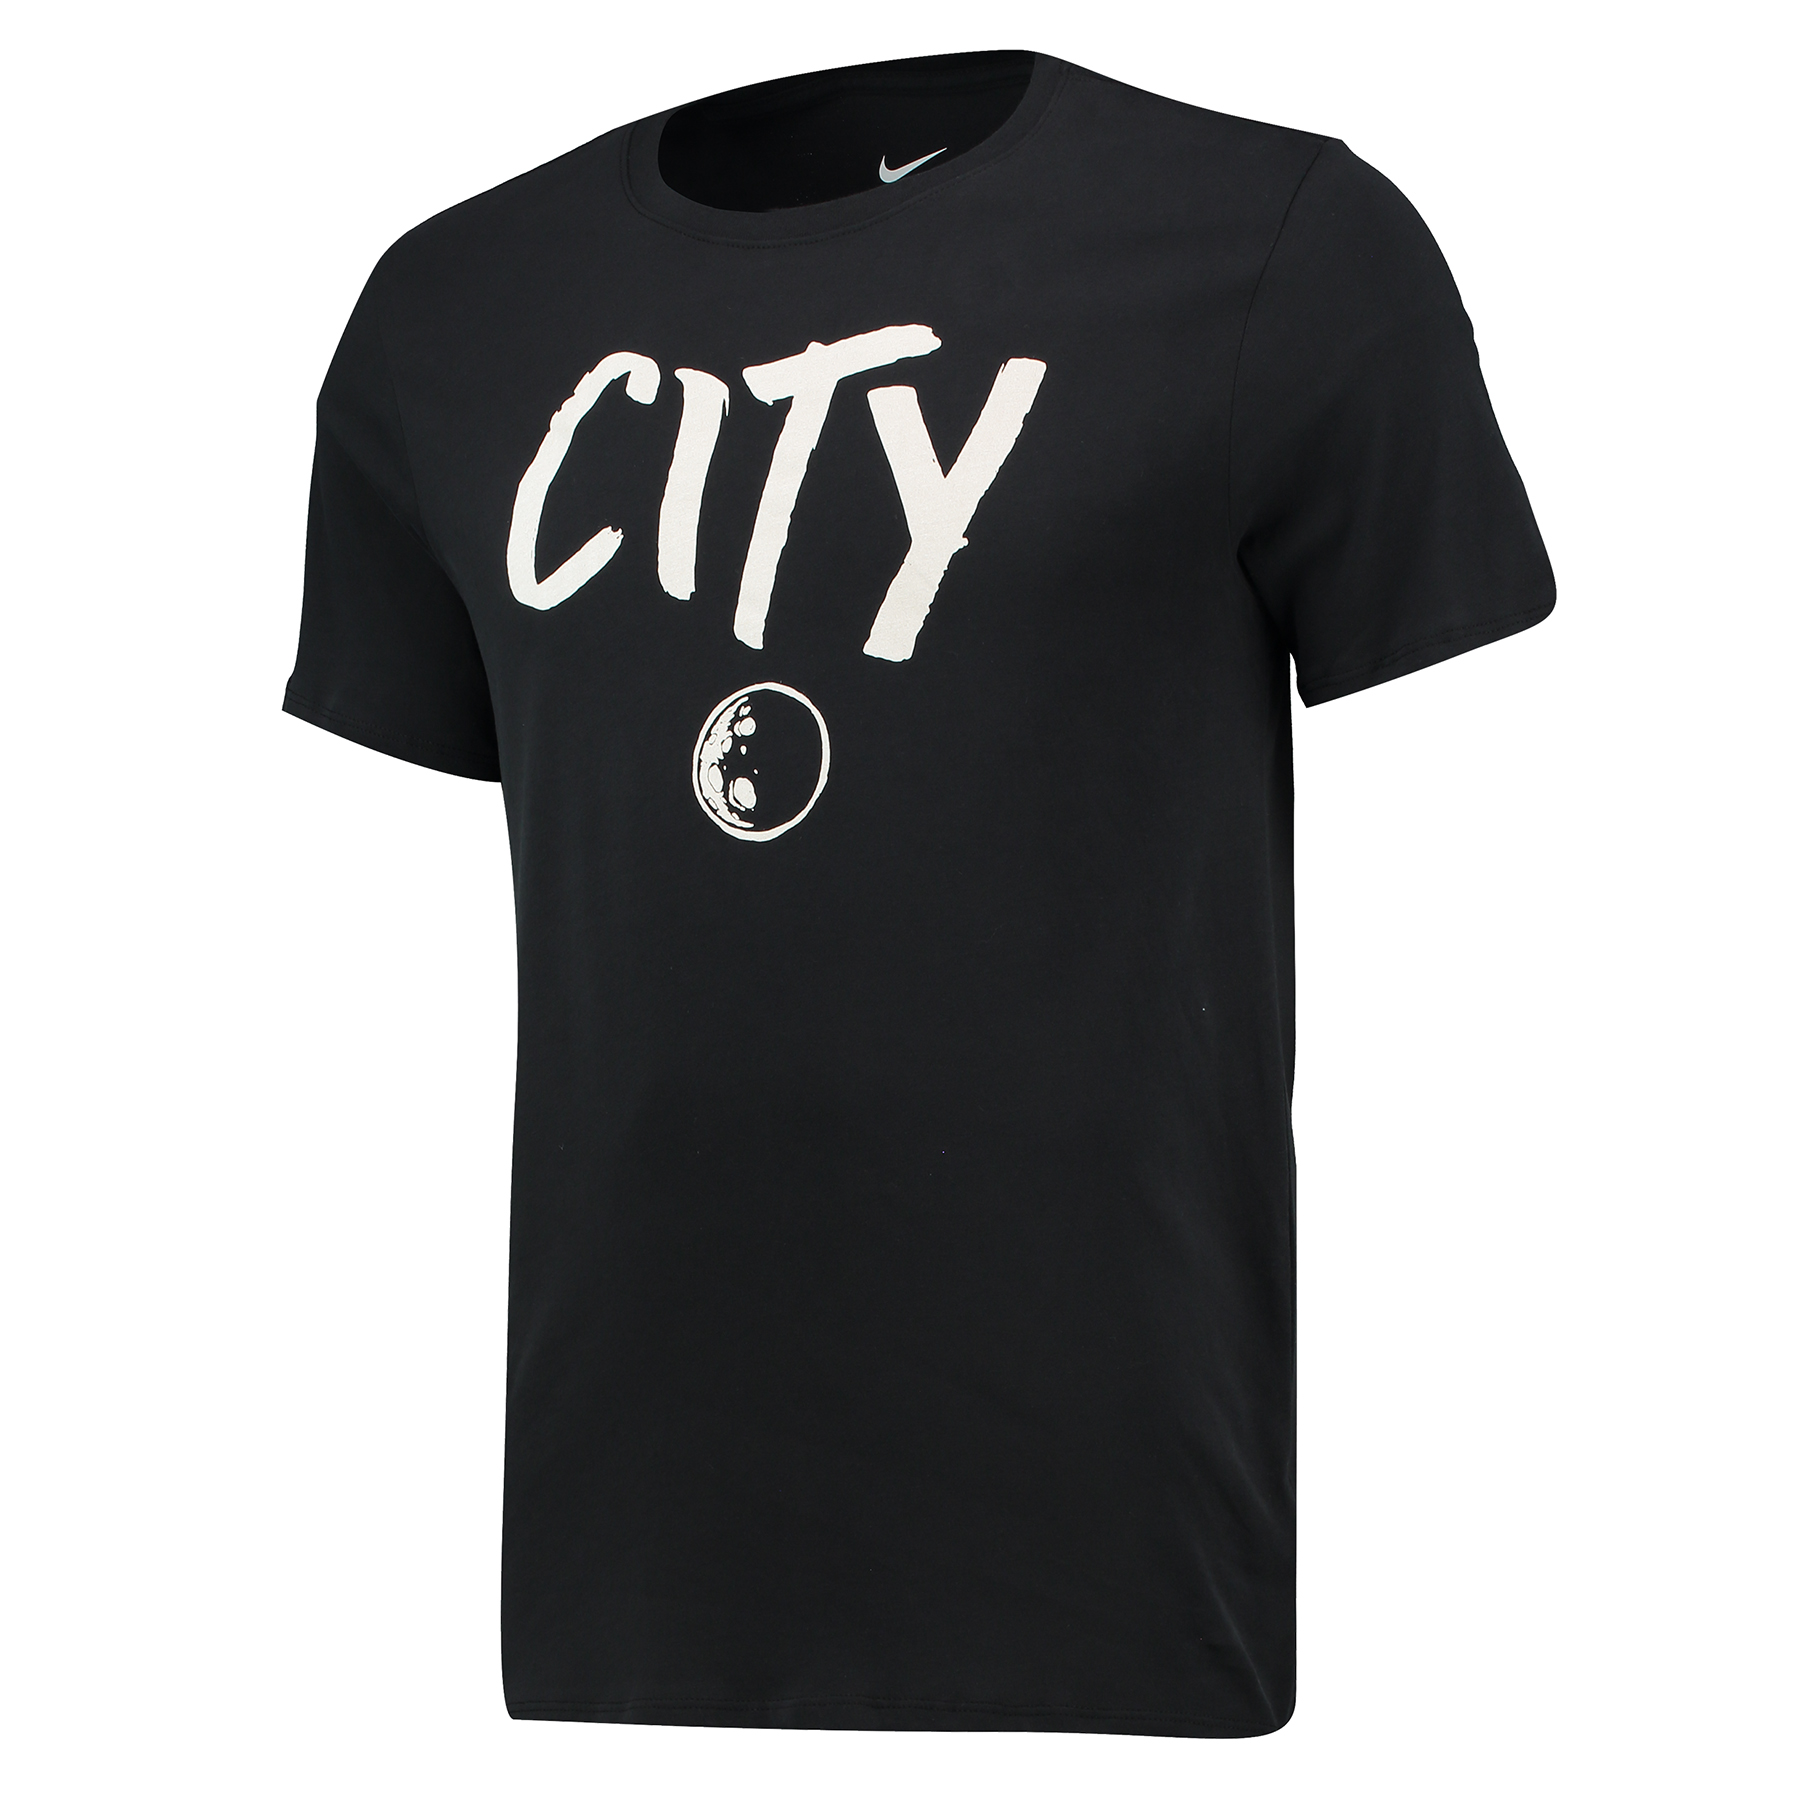 Manchester City Squad T-Shirt - Black